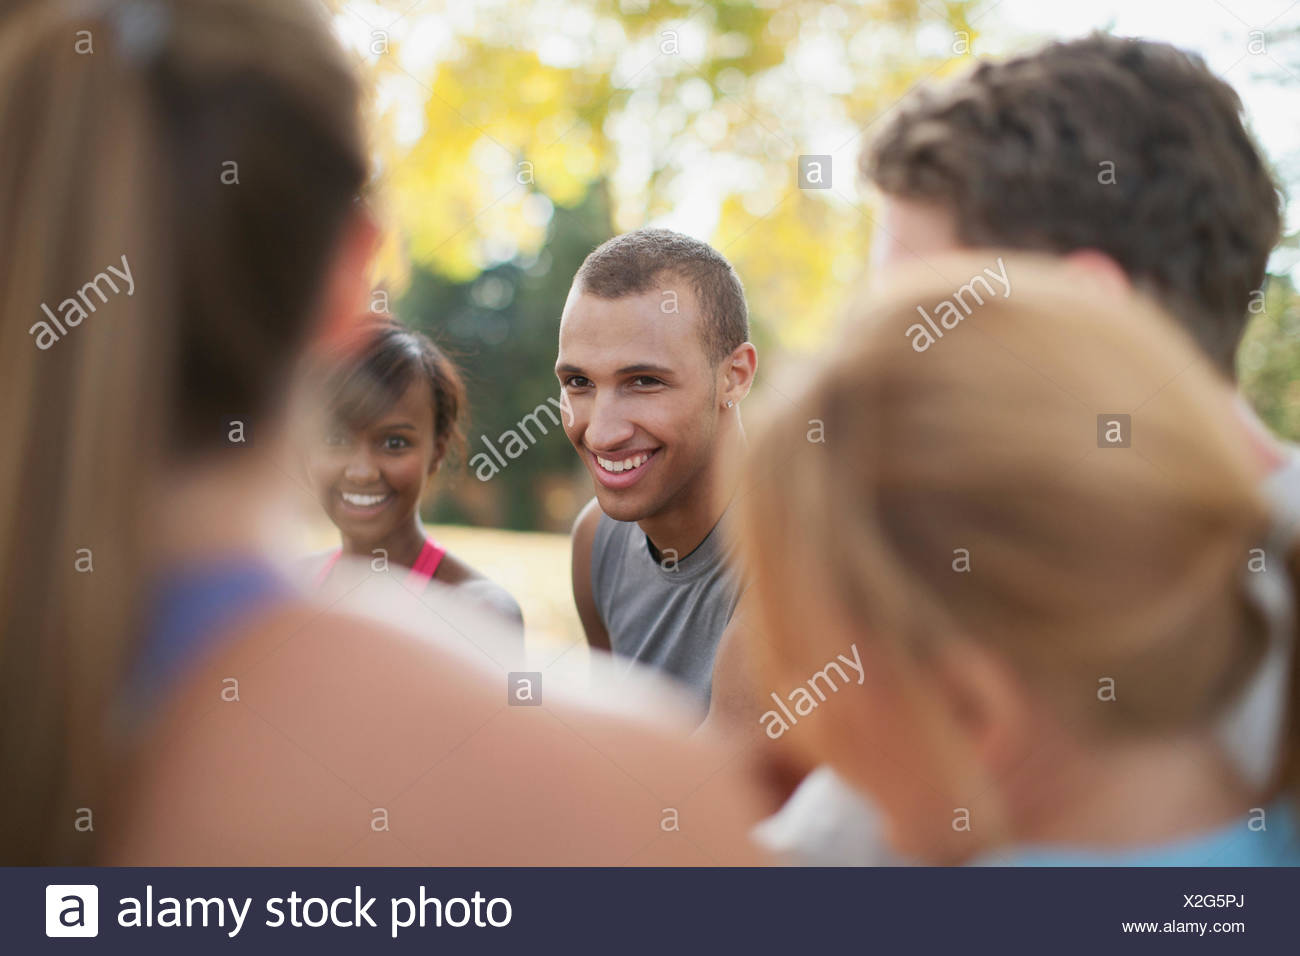 Outdoor fitness class standing and talking together. - Stock Image